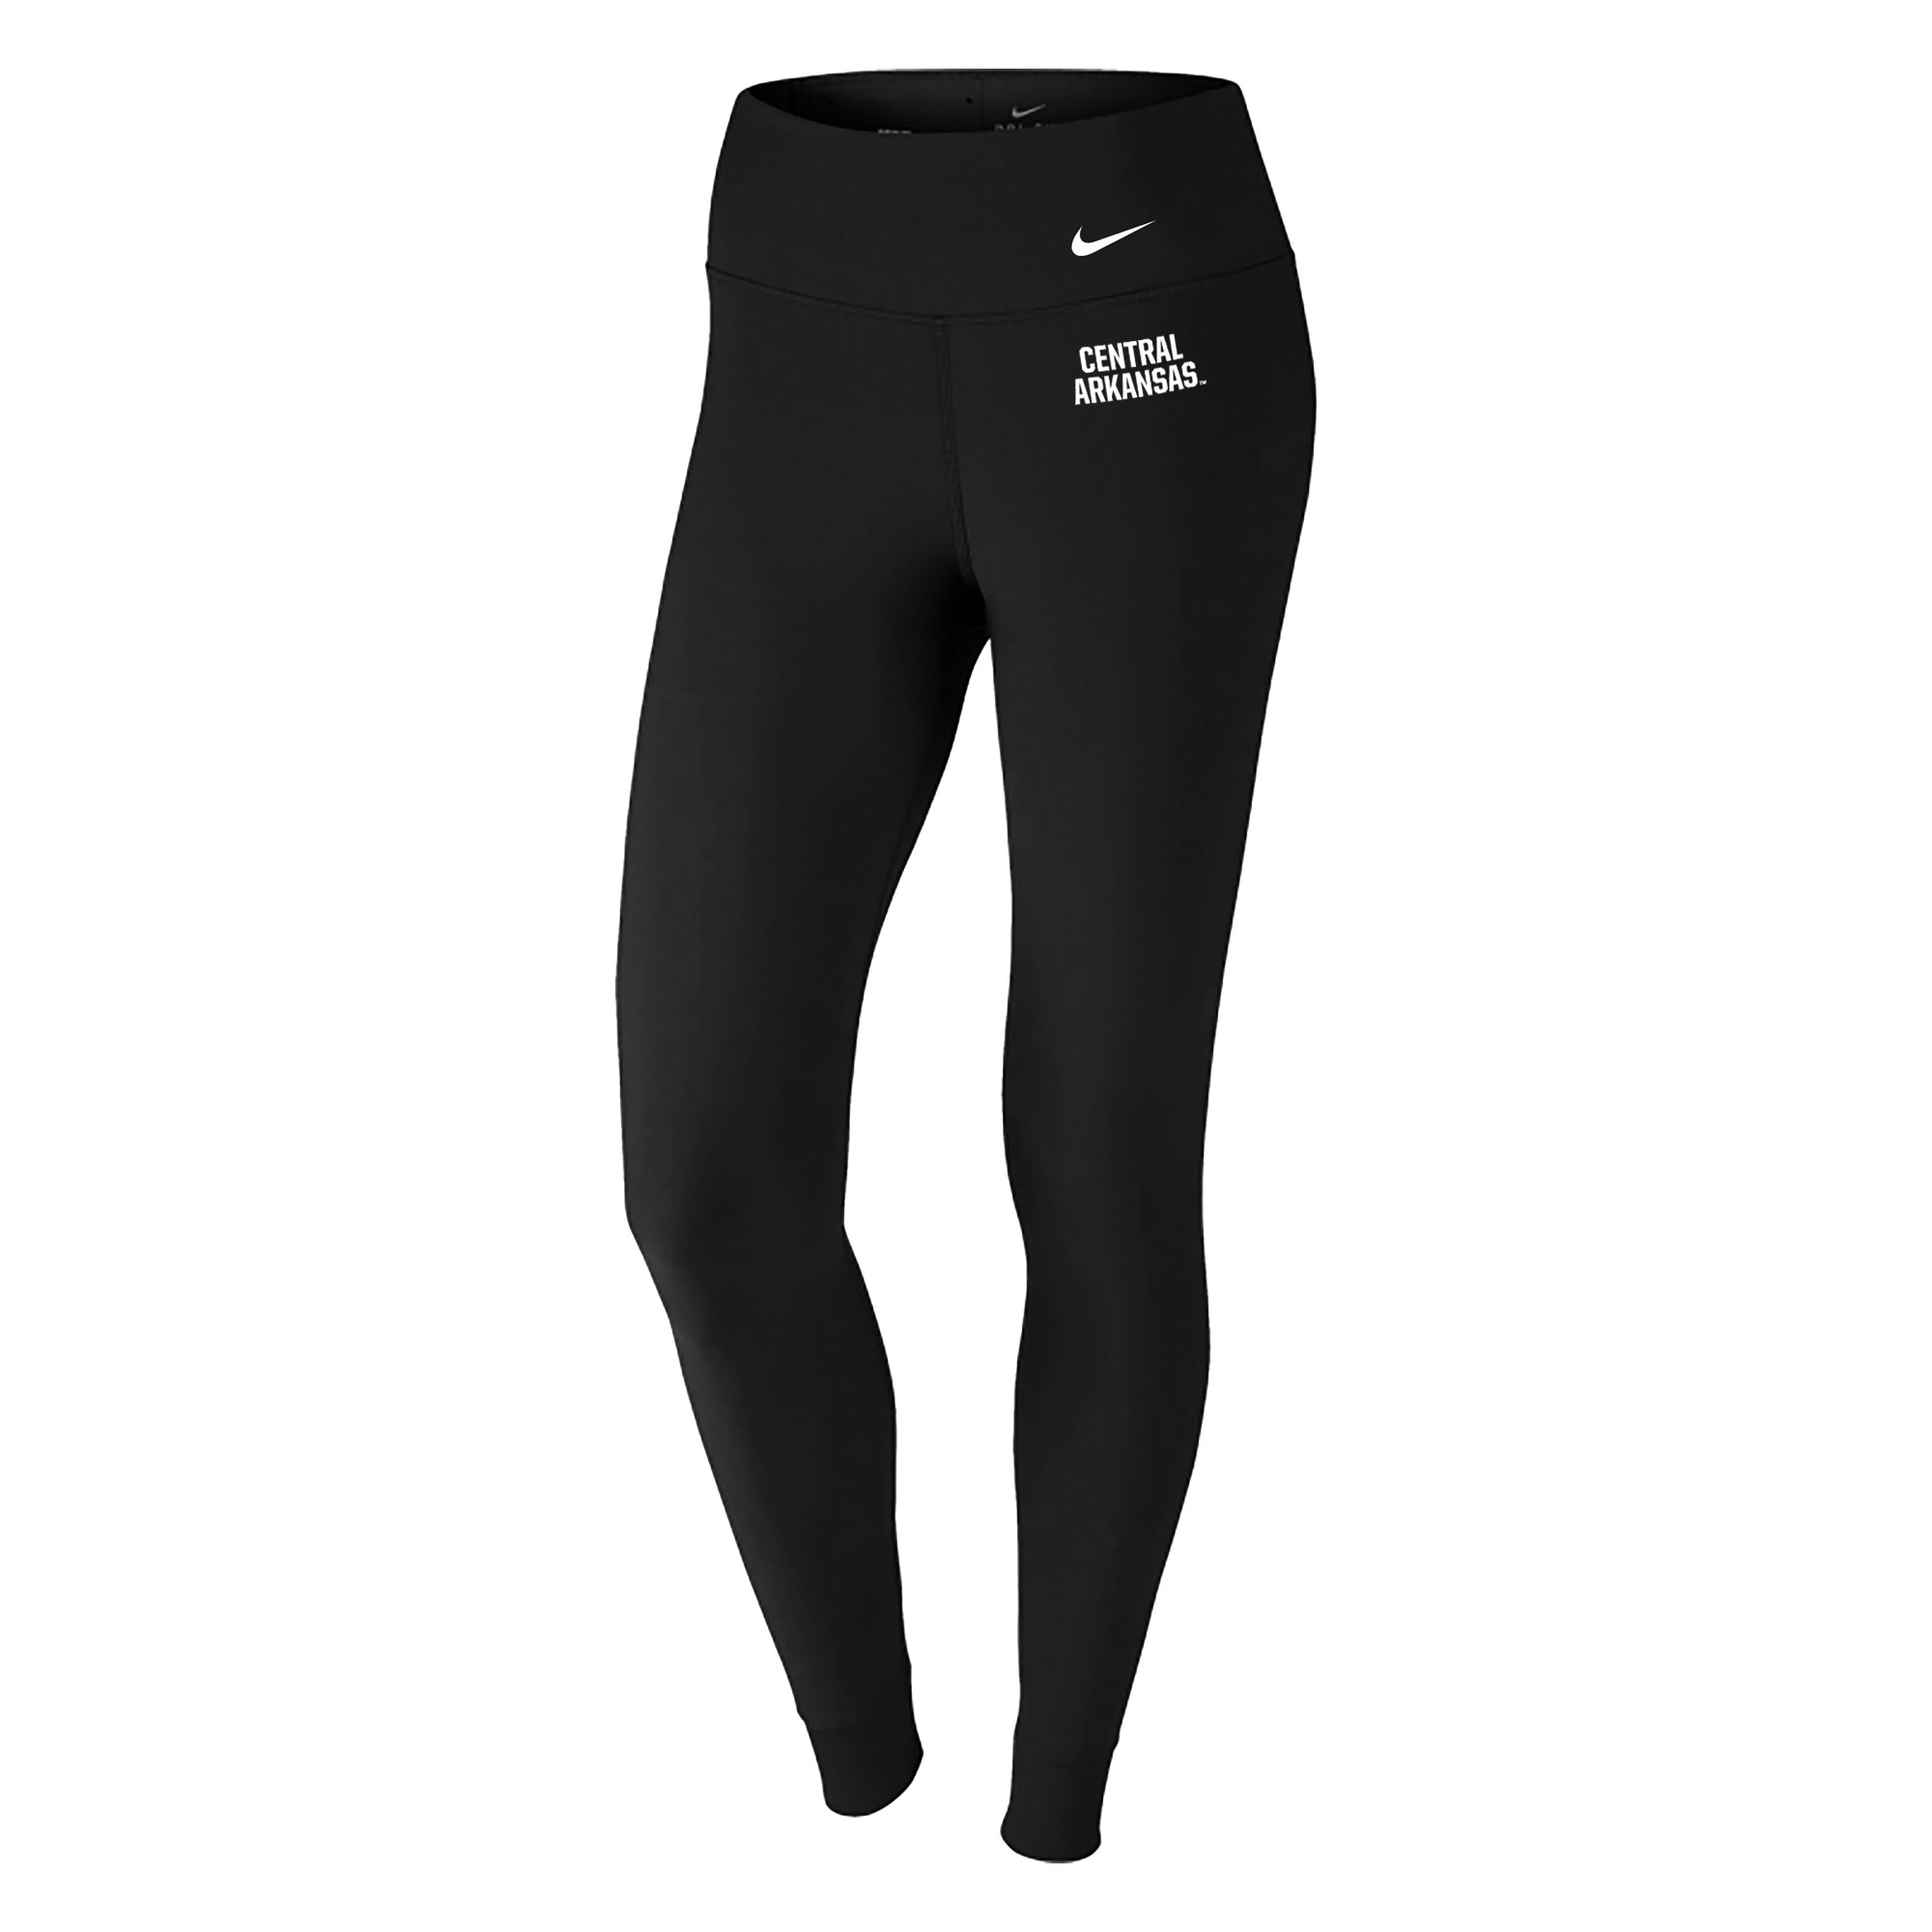 Jogger Power Legend Tights